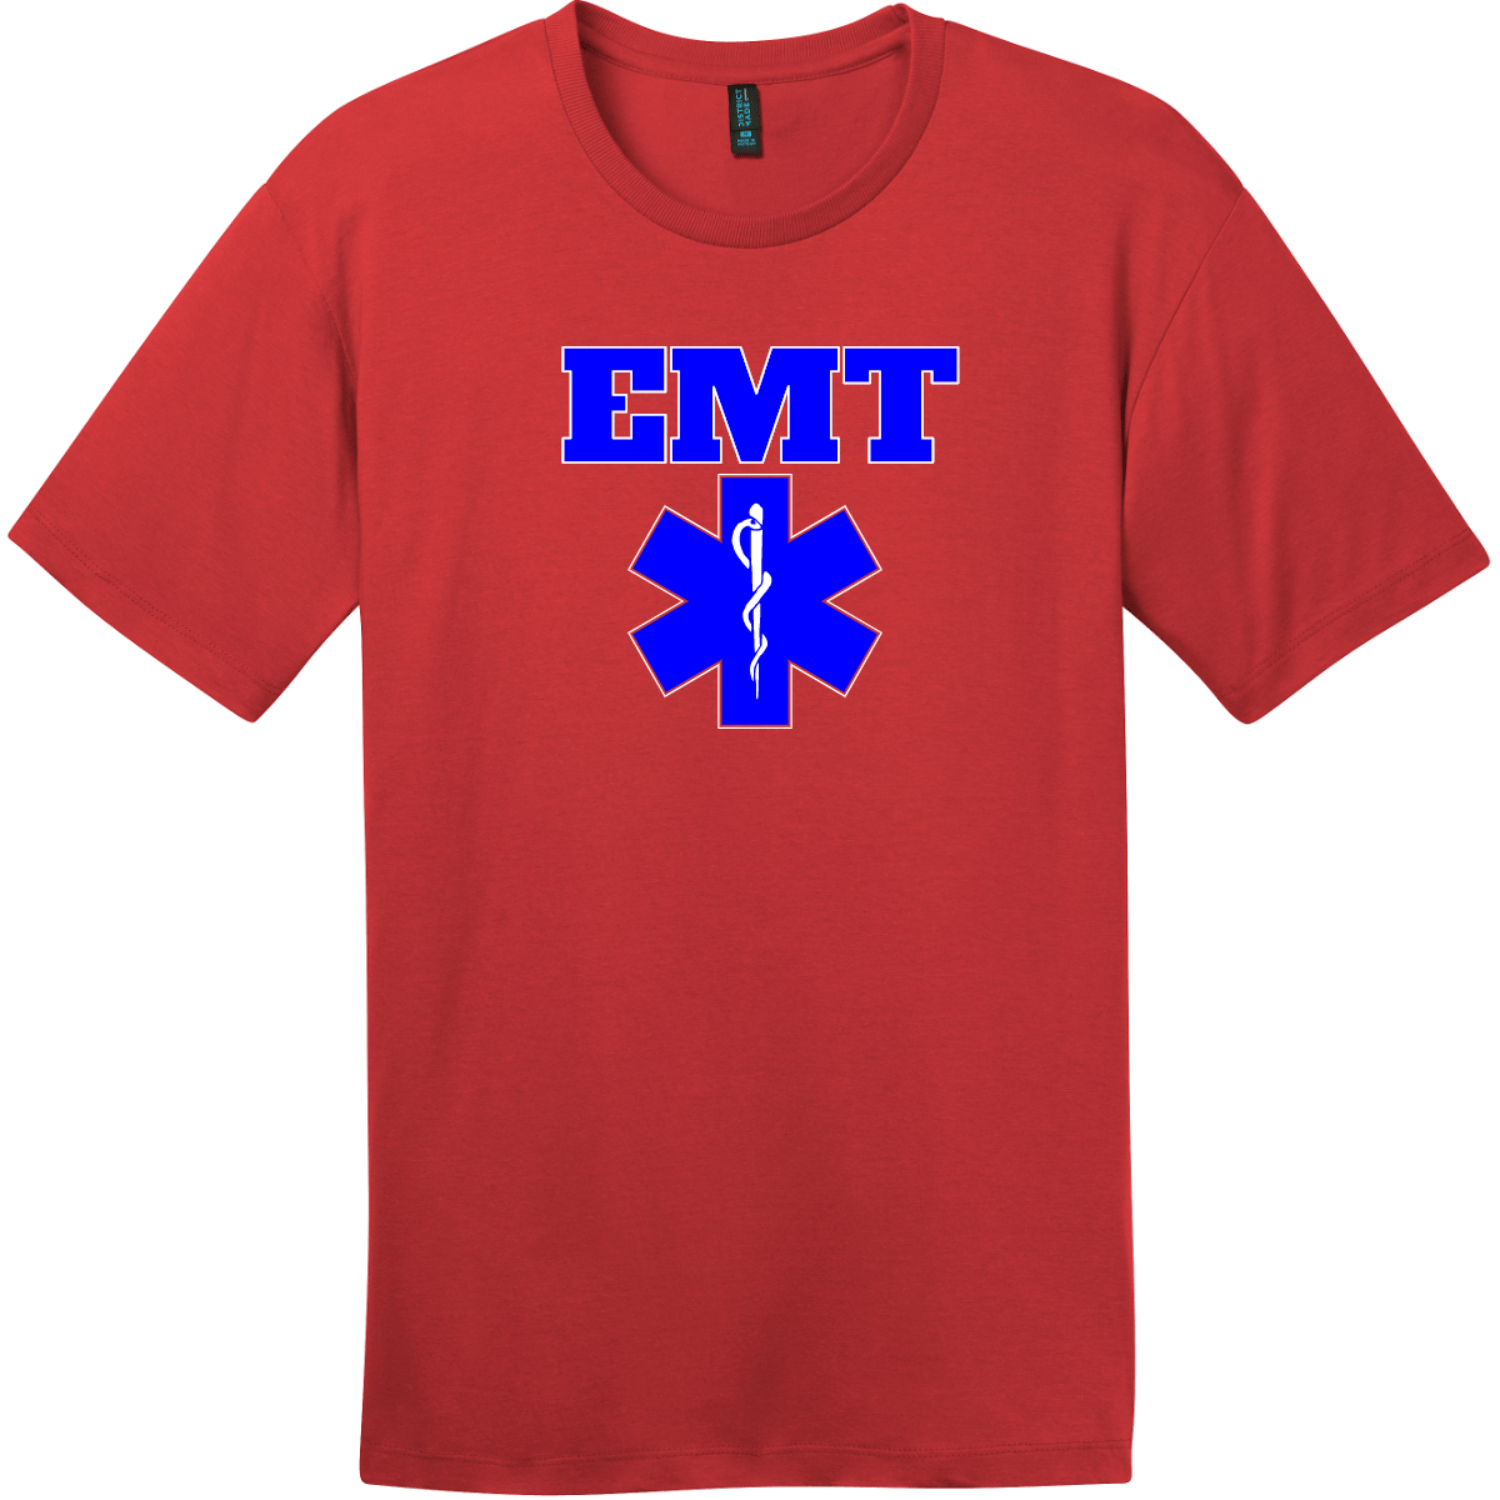 EMT Emergency Medical Technician T-Shirt Classic Red District Perfect Weight Tee DT104